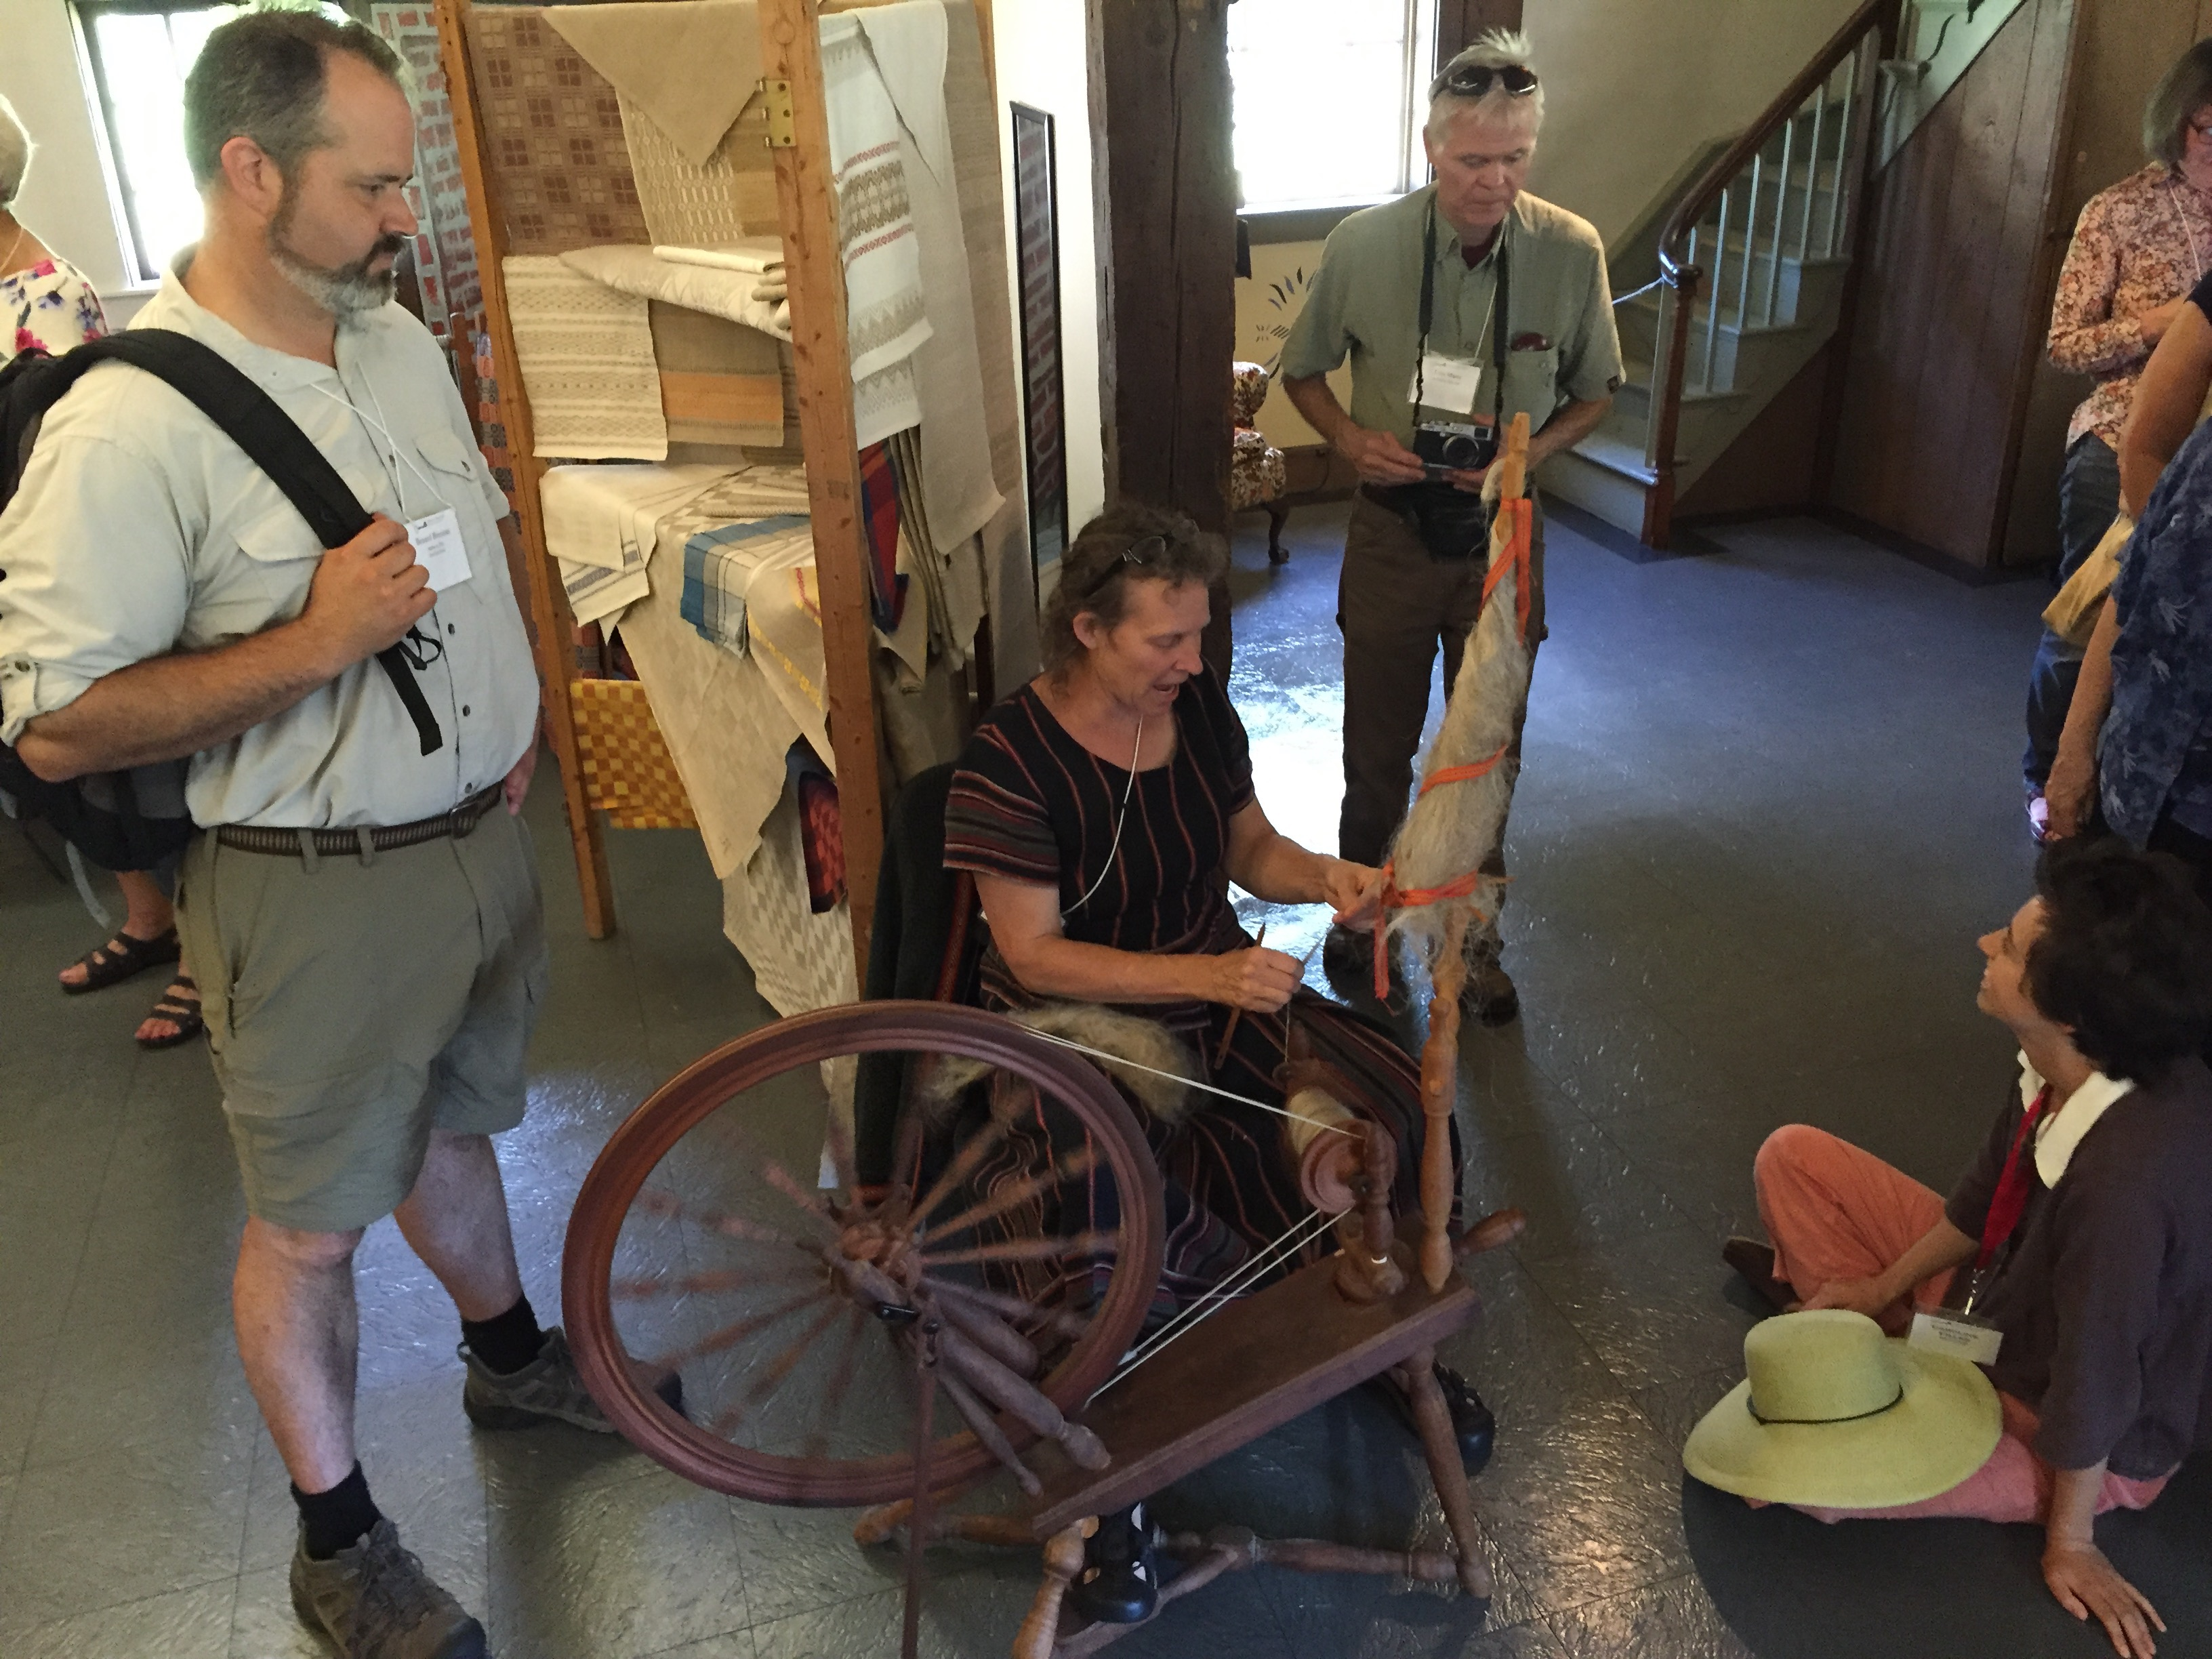 Photo of Becky Ashenden (seated) demonstrating spinning flax at the Flax & Linen Symposium 2016